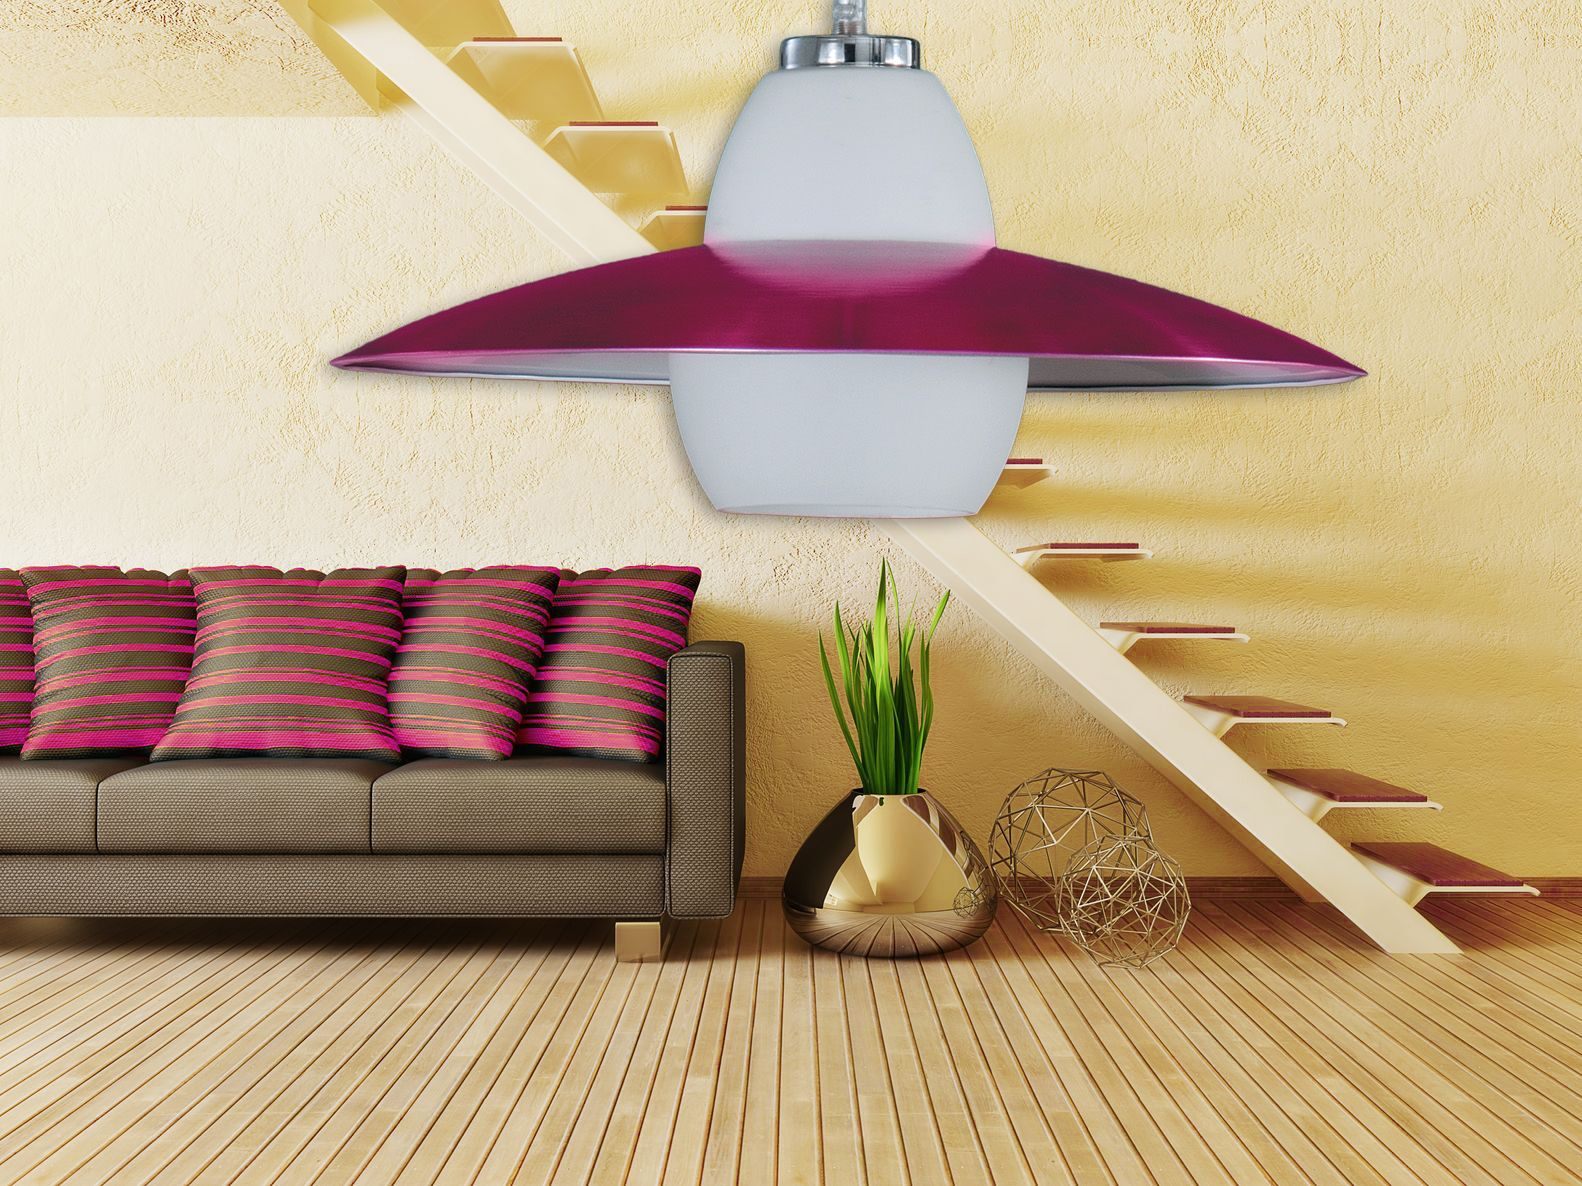 Stunning purple pendant colour your space with colourful light